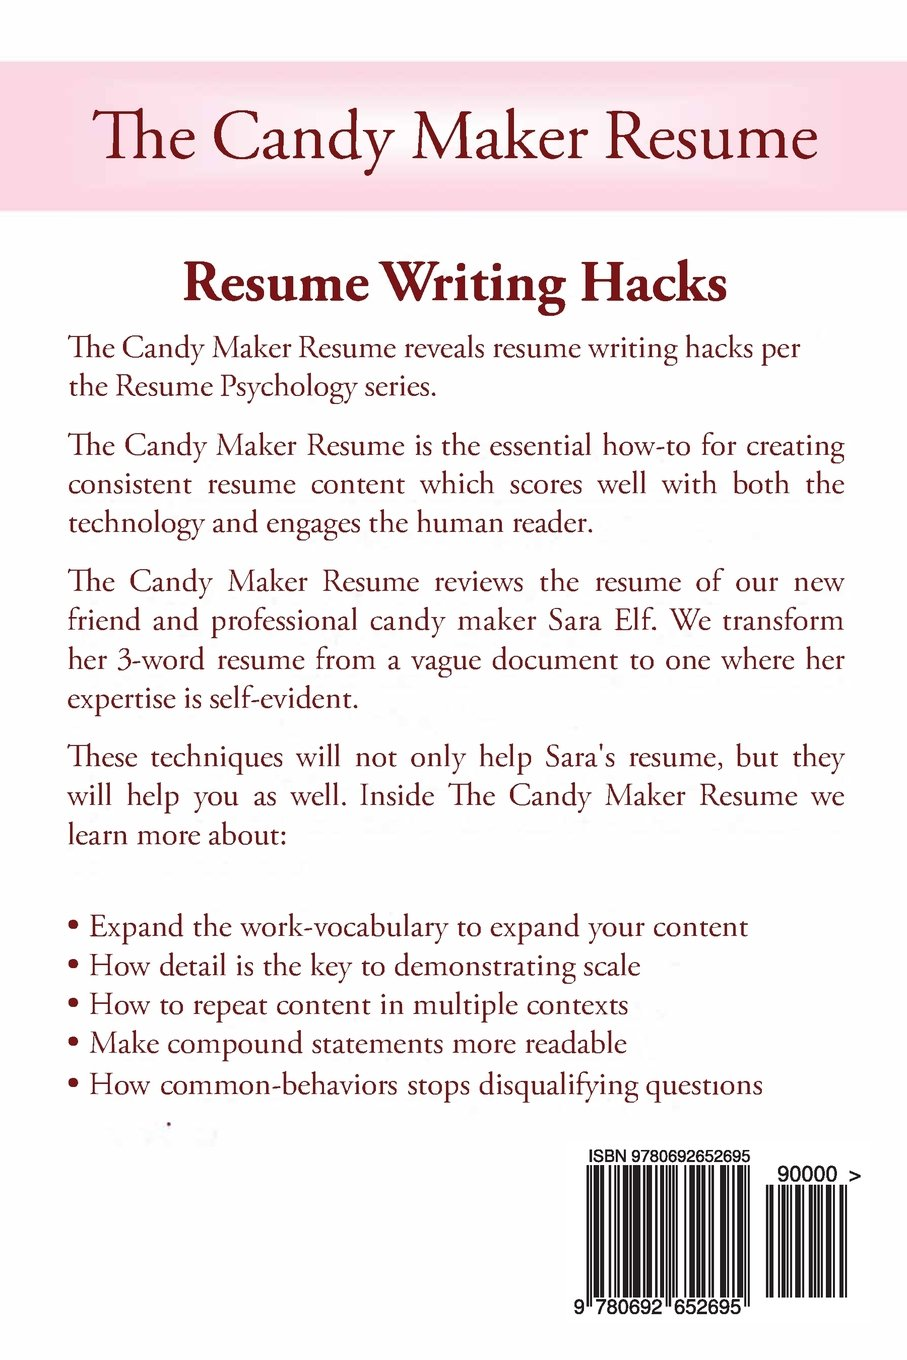 the candy maker resume resume writing hacks resume psychology